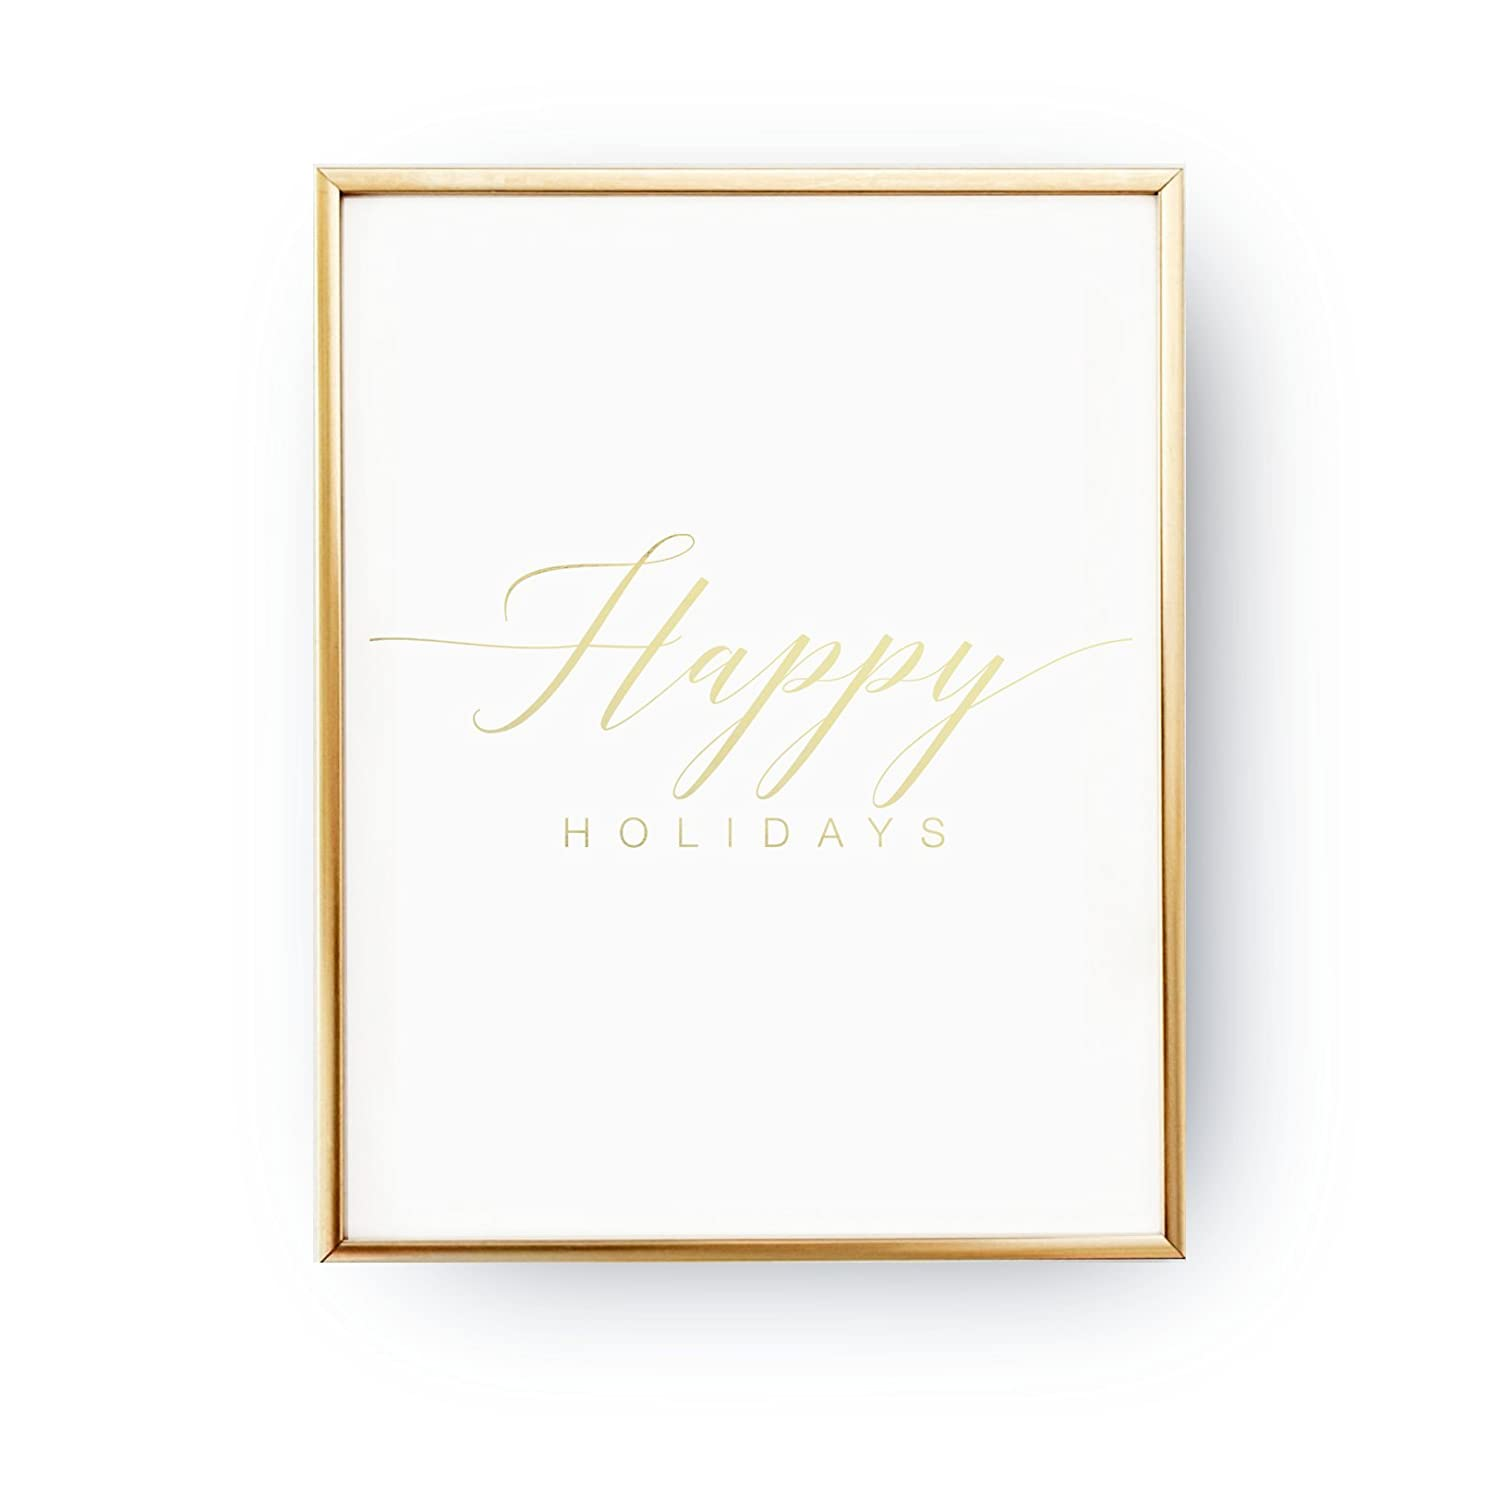 photograph about Happy Holidays Printable Card titled : Joyful Vacations Print, Correct Gold Foil, Christmas Artwork